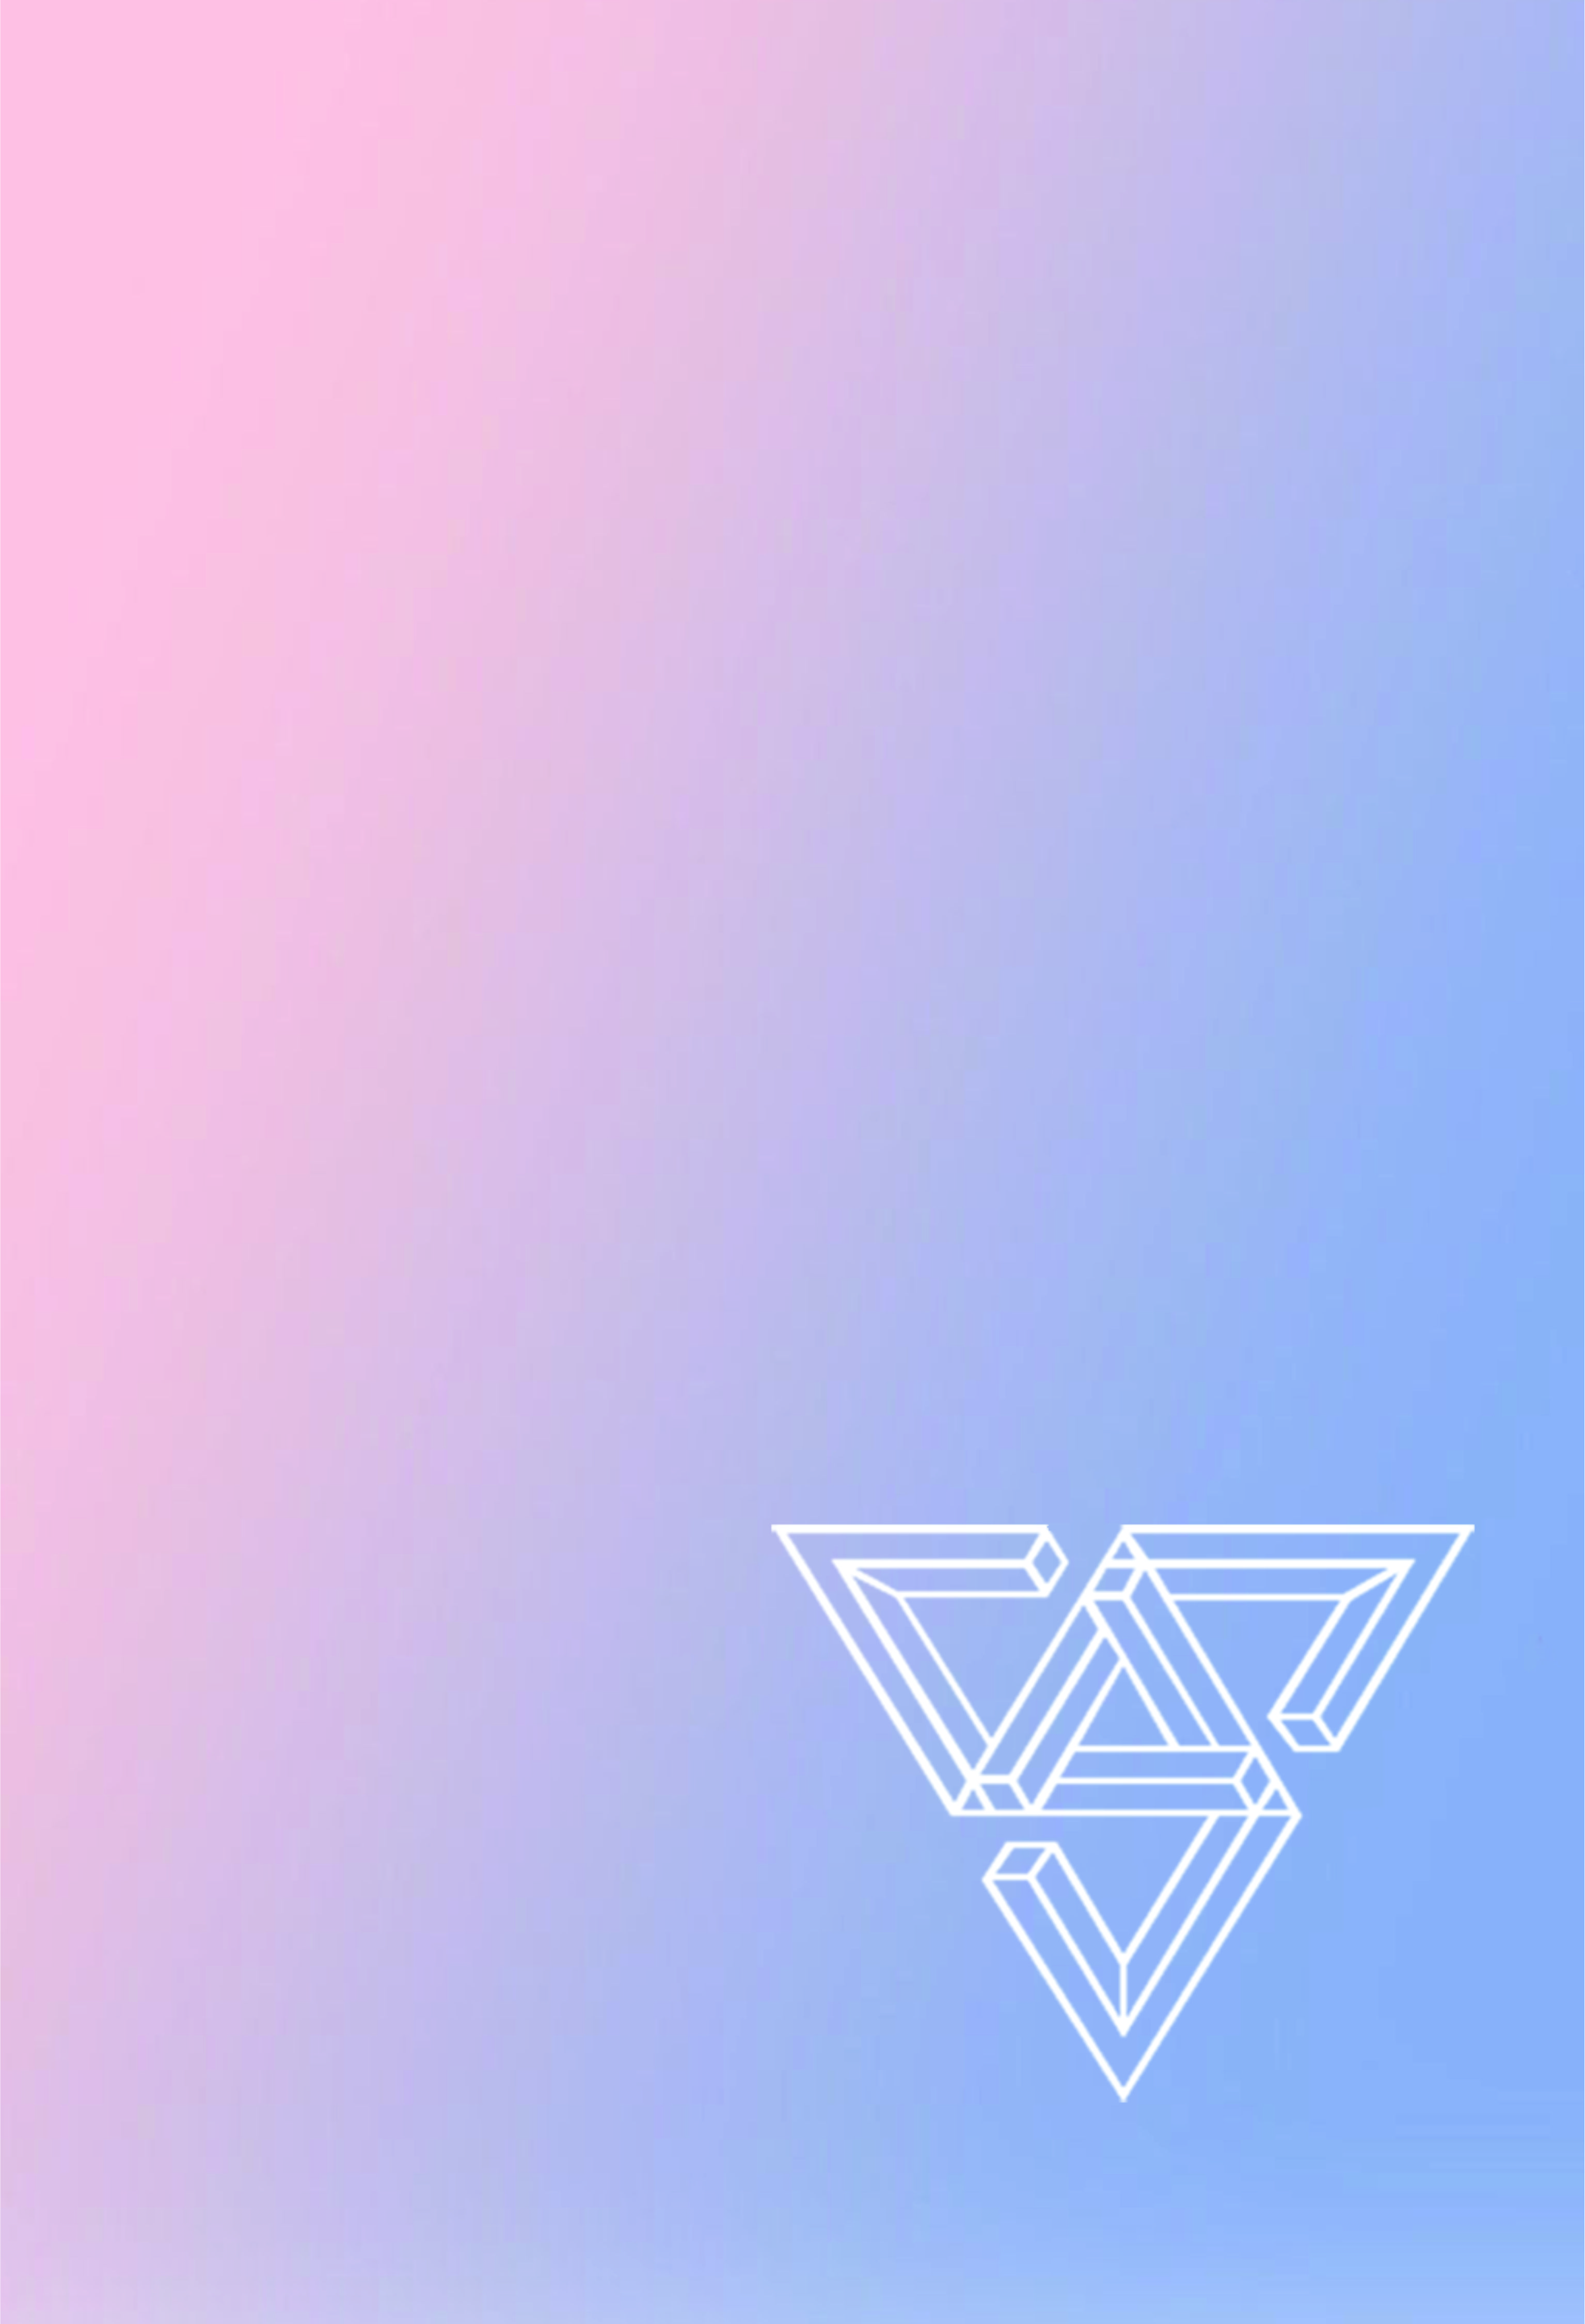 rose quartz serenity teen age wallpaper 1 seventeen wallpaper my edit in 2018 pinterest. Black Bedroom Furniture Sets. Home Design Ideas